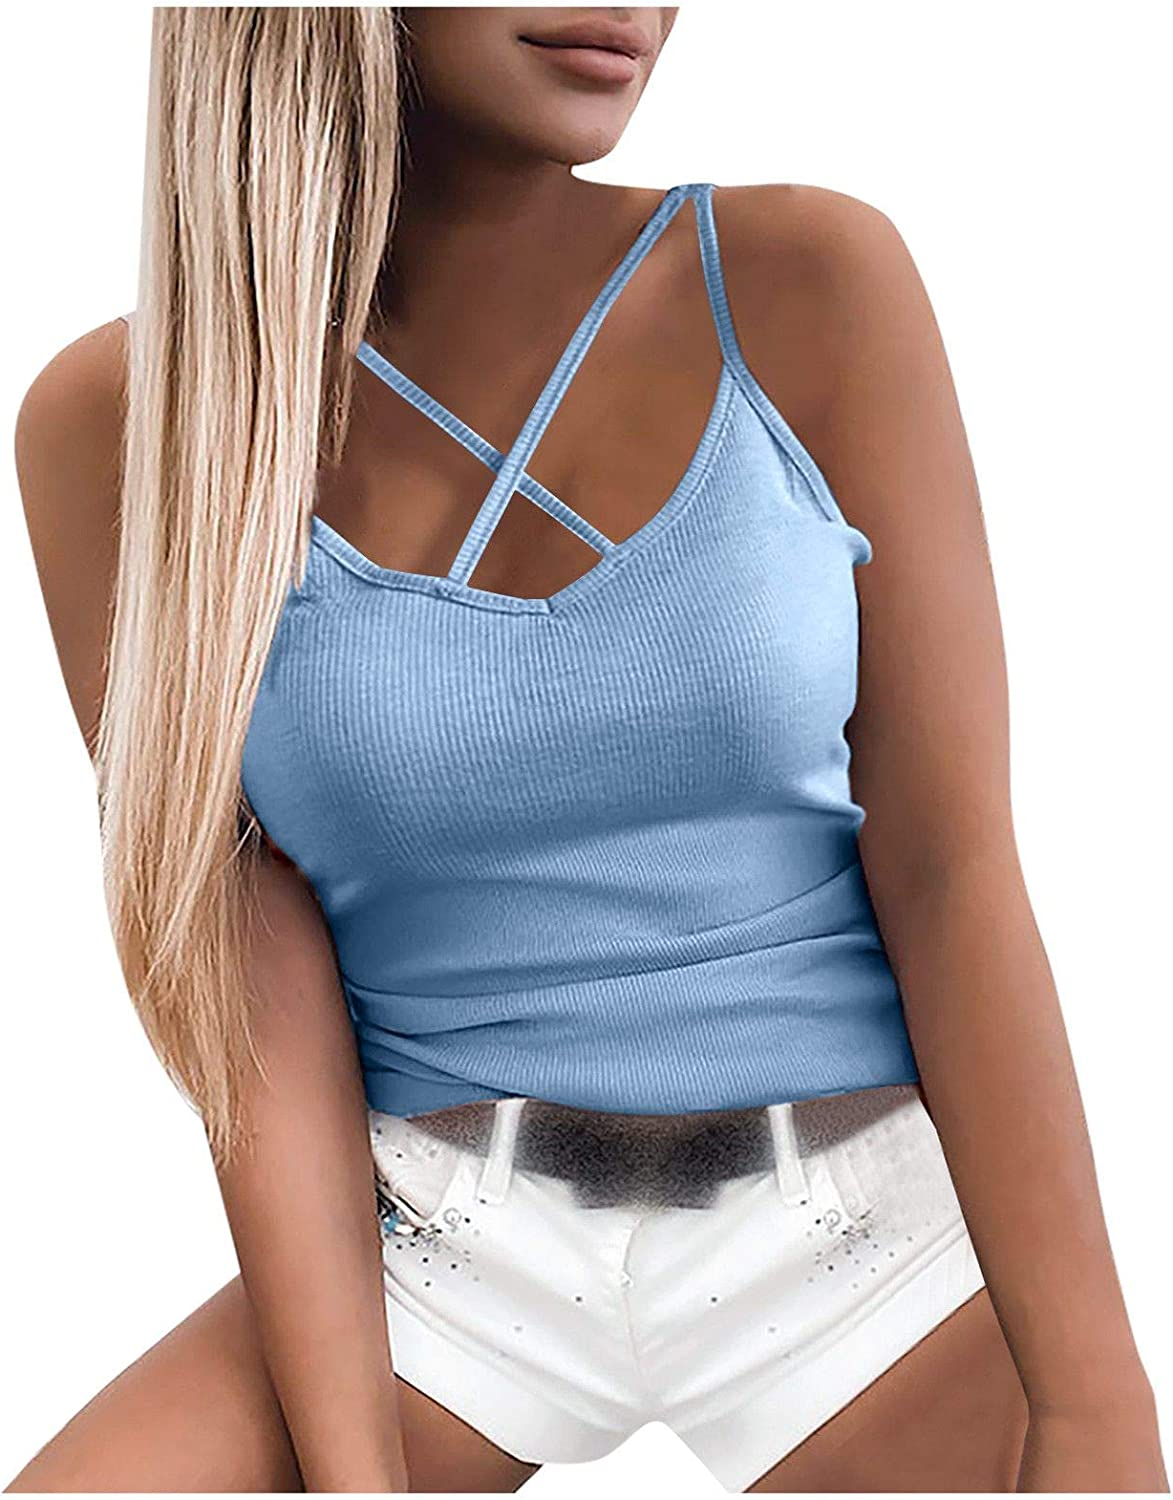 ML_Victor Crop Cami Tops for Women,Sexy Cross Strap Crop Tank Tops Solid Sleeveless Camisole Vest Slim Fit Shirt Tees